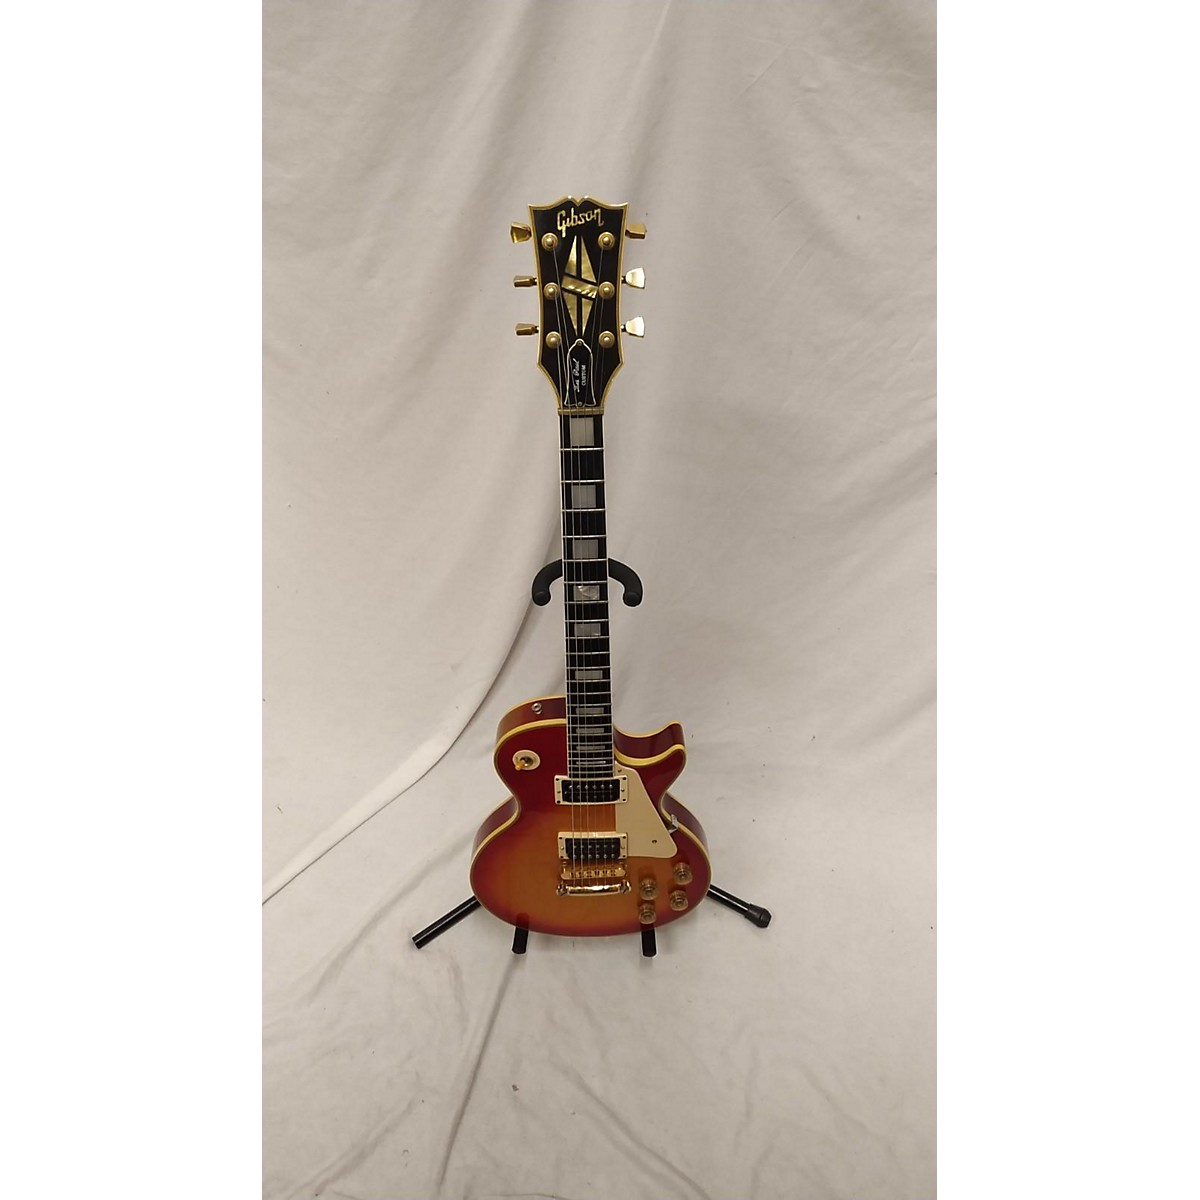 Gibson 1978 LES PAUL CUSTOM Solid Body Electric Guitar